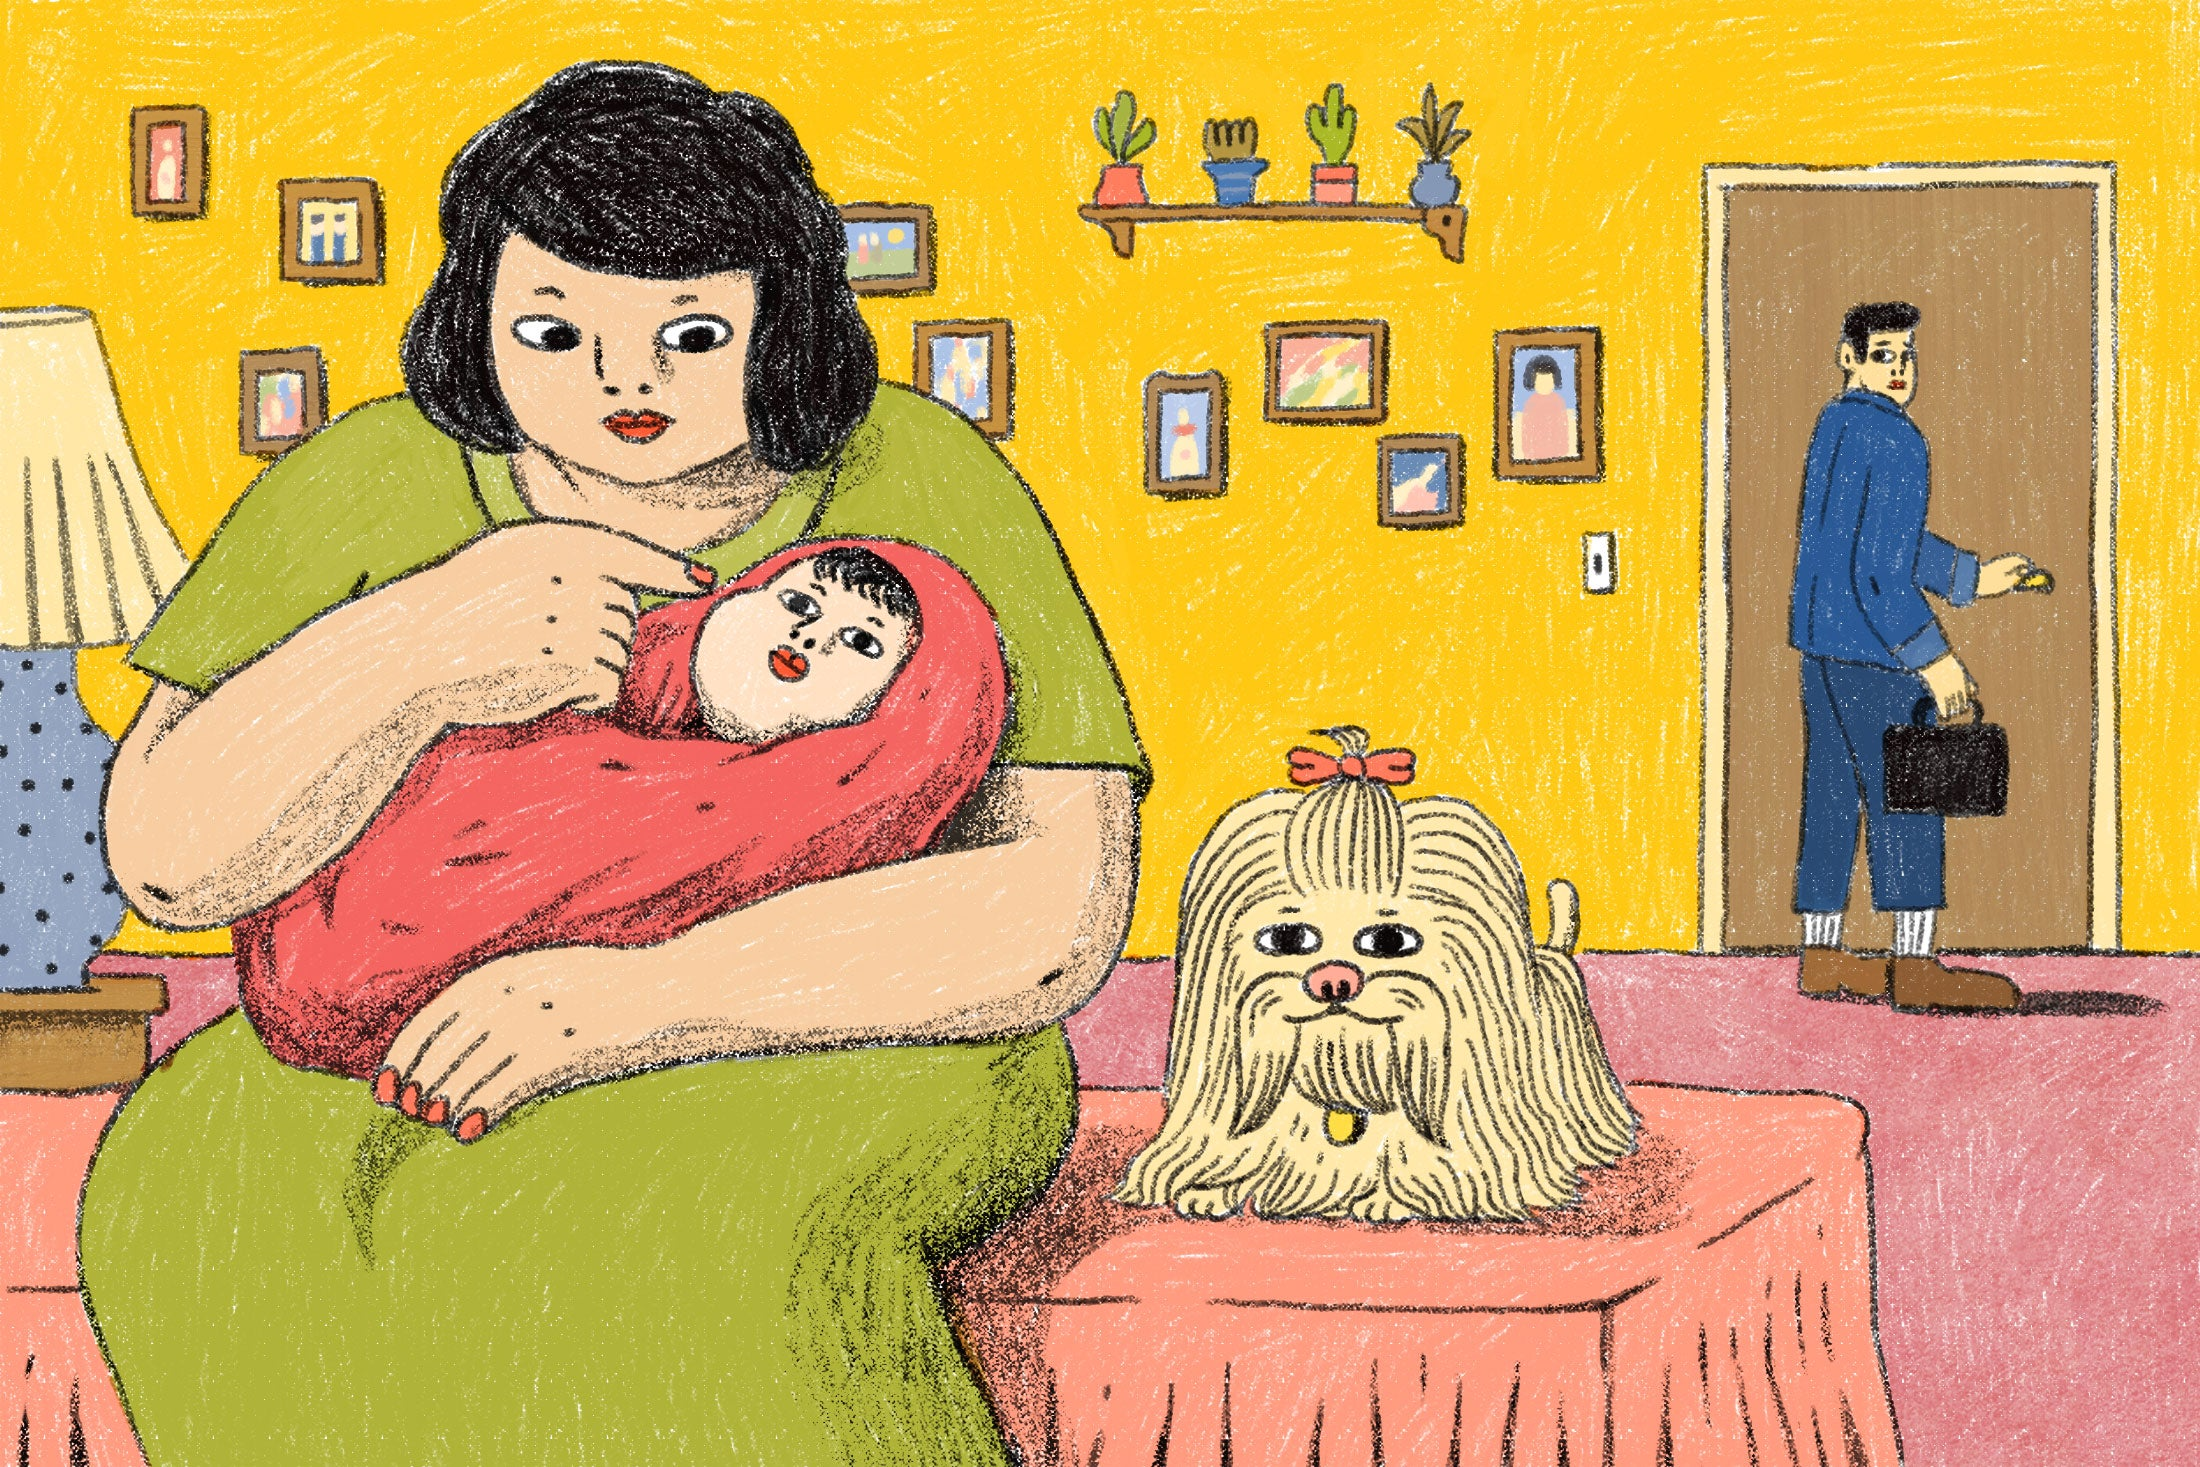 Illustration: a woman cares for a baby while sitting on a bed as a man leaves for work, but looks back at them.